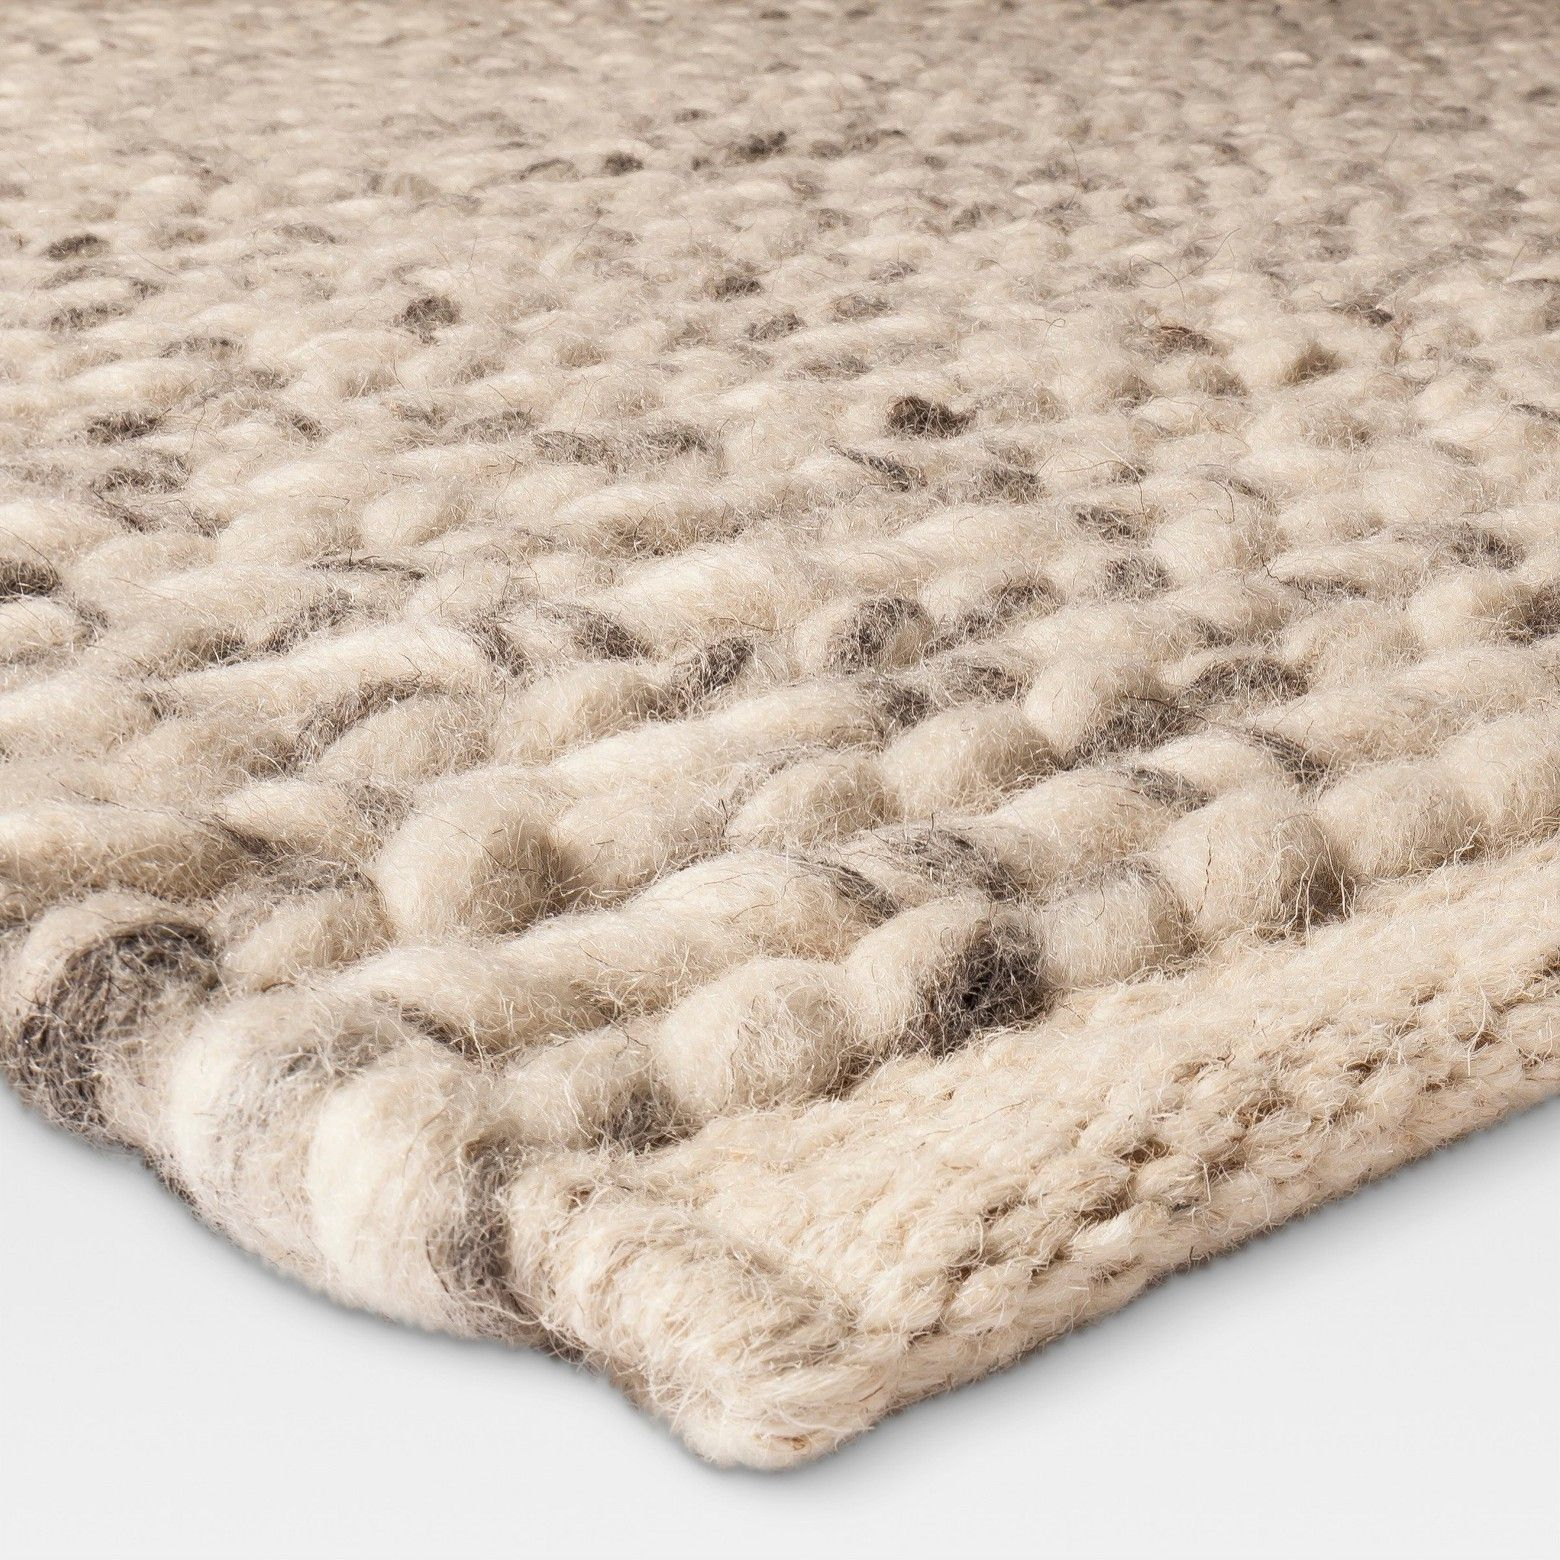 Woven Wool Rug Project 62 Chunky Knit Braided Wool Rug Wool Rug